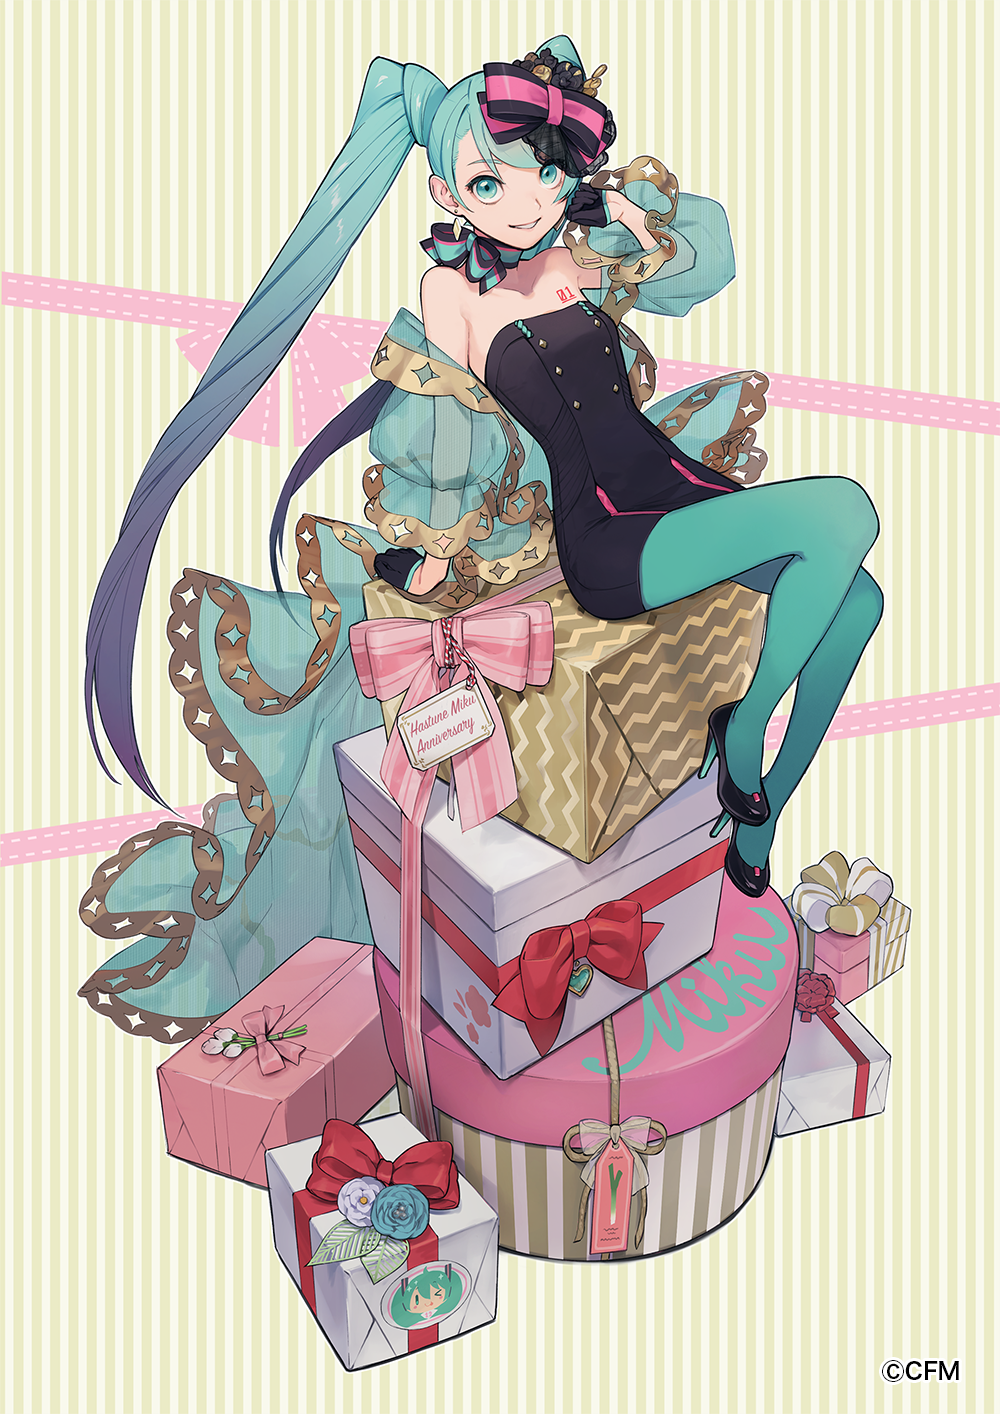 1girl :d anniversary aqua_eyes aqua_flower aqua_hair aqua_legwear aqua_neckwear aqua_ribbon arm_support bare_shoulders black_bow black_dress black_footwear black_gloves bow box breasts character_name character_print choker commentary_request dress earrings flower gift gift_box gloves gradient_hair hair_bow half_gloves hatsune_miku high_heels highres iwato1712 jewelry knee_up leaning_back long_hair looking_at_viewer multicolored_hair number open_mouth pantyhose pink_bow platform_footwear puffy_sleeves purple_flower ribbon ribbon_choker see-through short_dress sitting small_breasts smile solo stacking strapless strapless_dress striped striped_background twintails two-tone_bow two-tone_hair vertical-striped_background vertical_stripes very_long_hair vocaloid white_flower